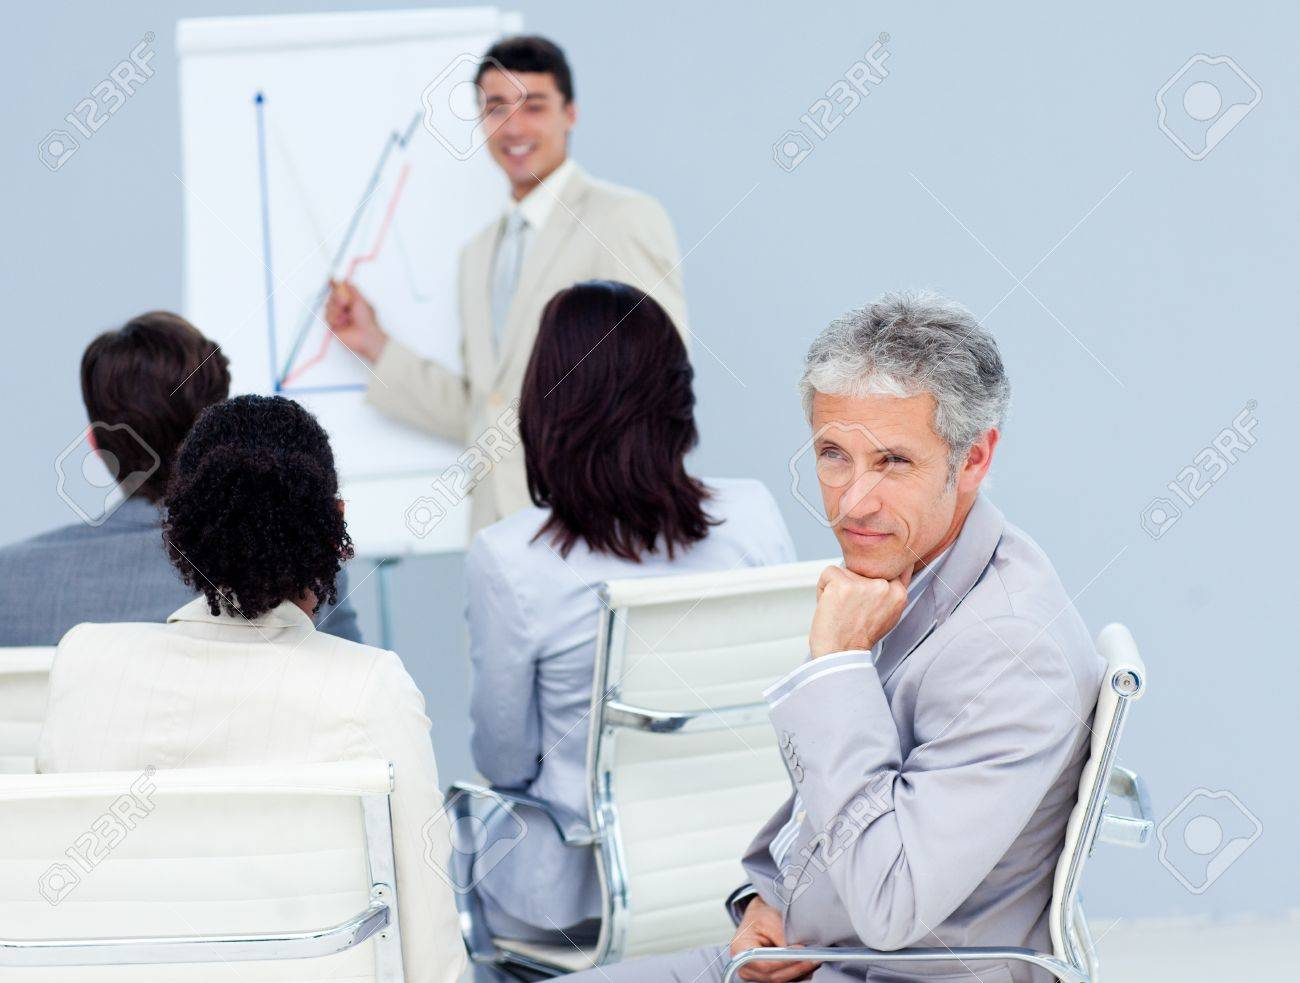 Charming businessman looking at the camera at a conference Stock Photo - 10259146